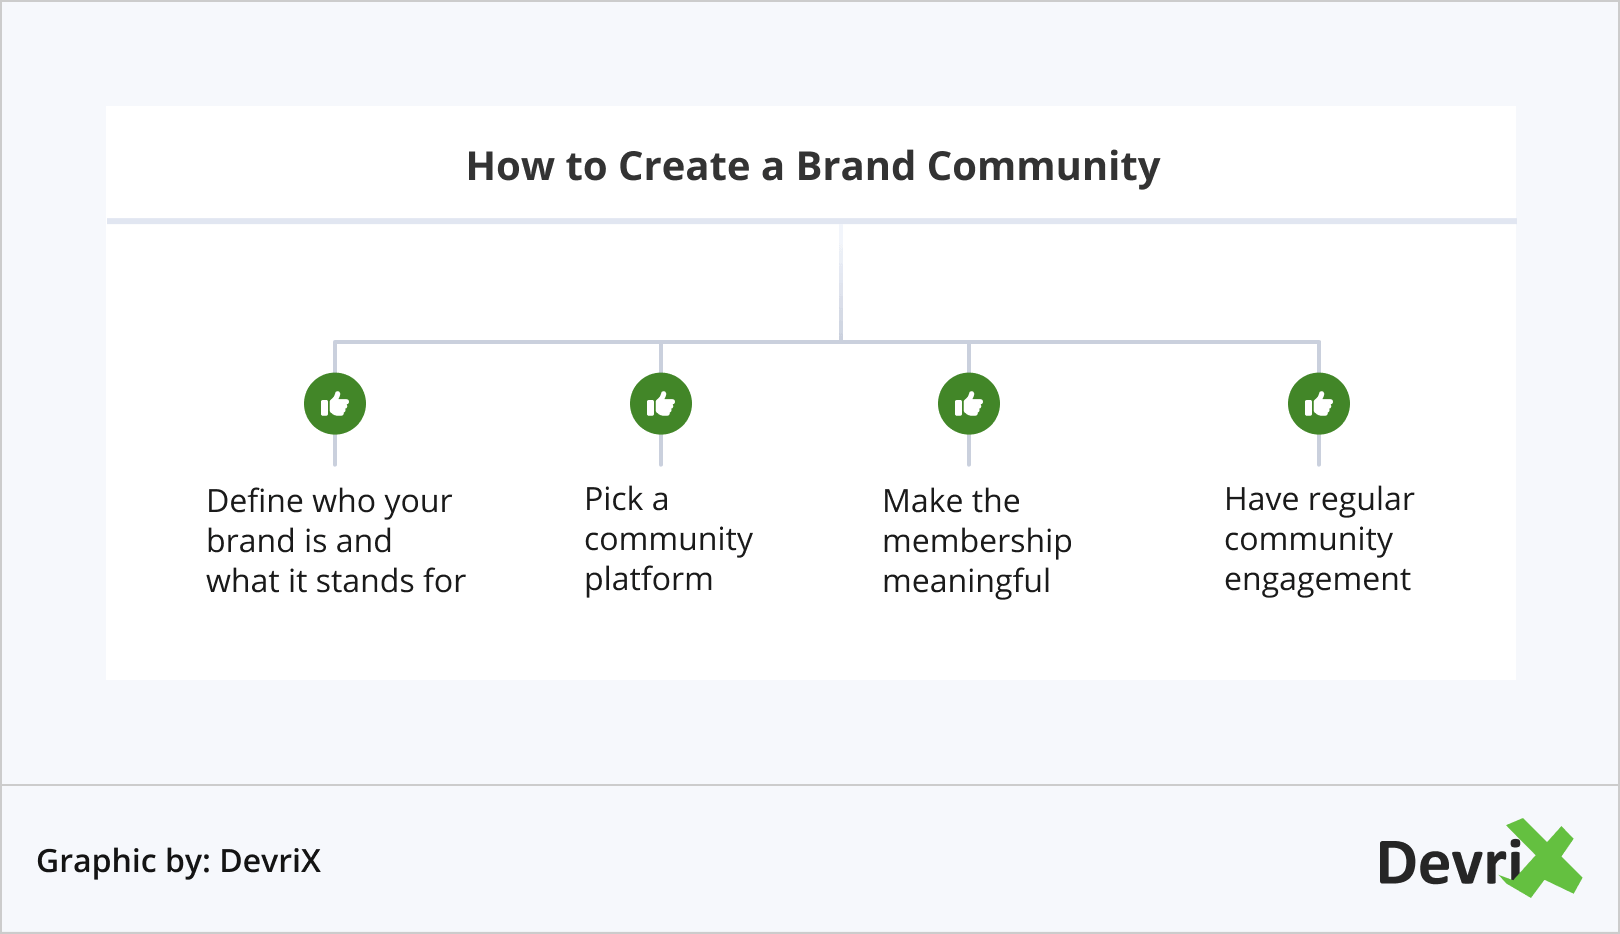 How to Create a Brand Community